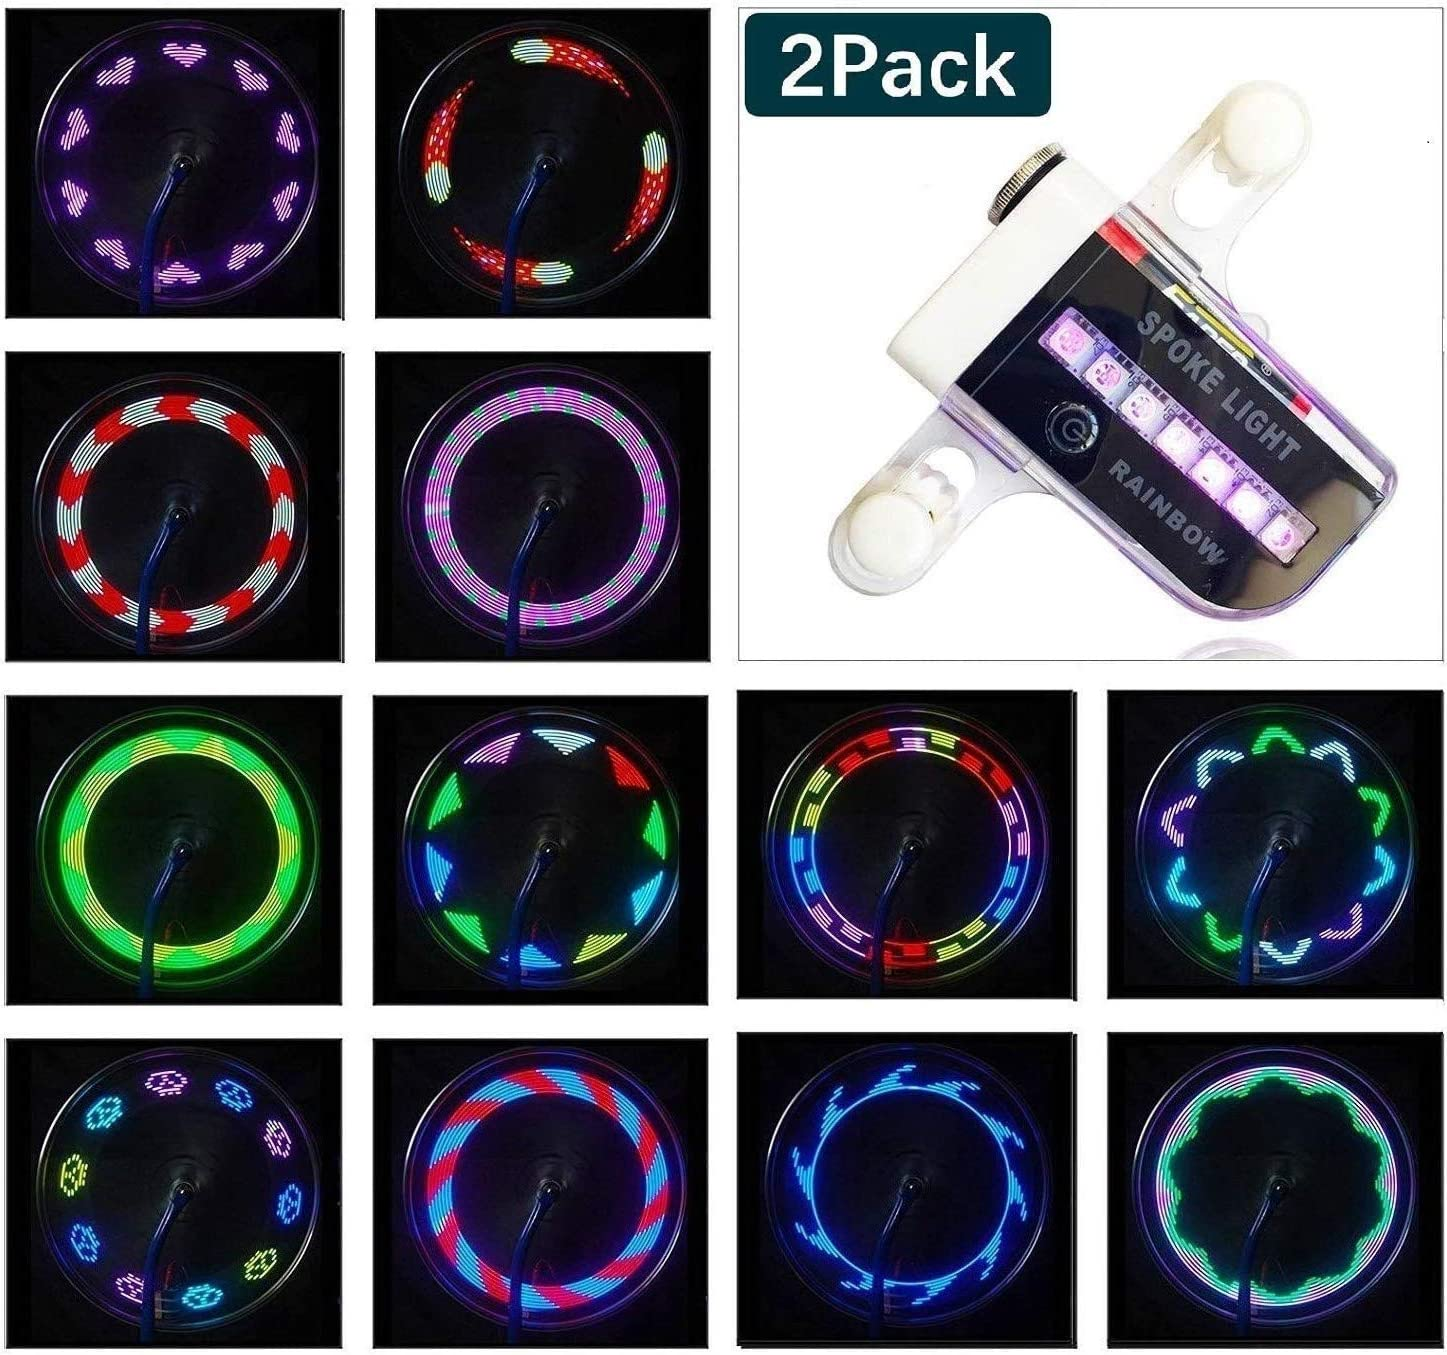 Bike Wheel Lights - Waterproof LED Bicycle Spoke Lights Safety Tire Lights - Great Gift for Kids Adults - 30 Different Patterns Change - Bike Accessories - Easy to Install